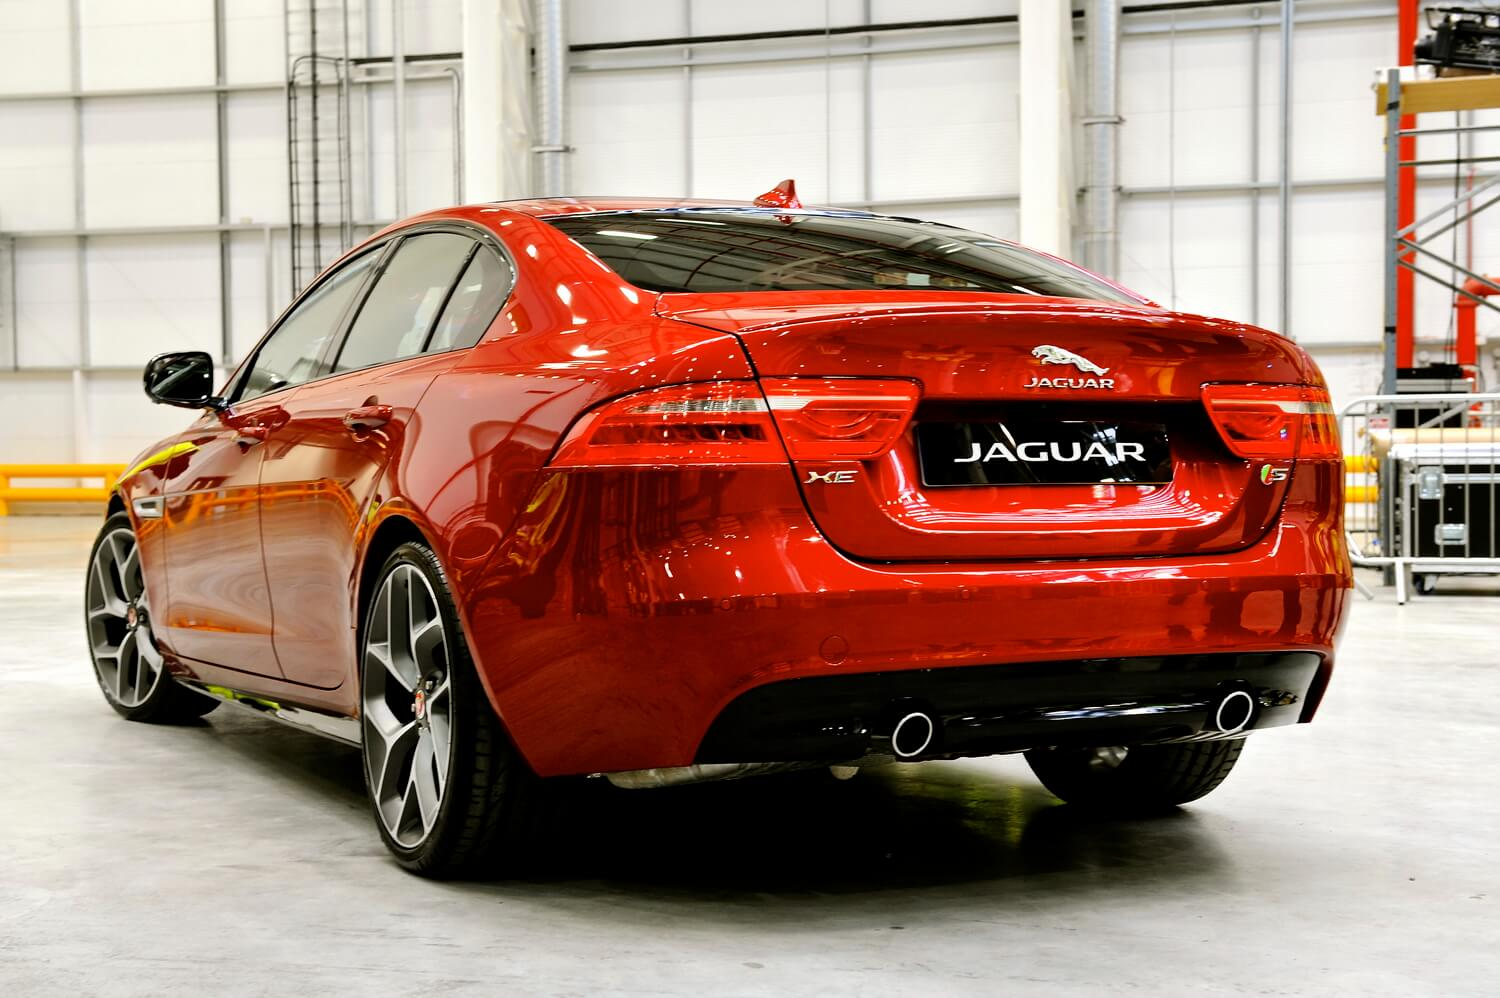 Professional Jaguar car photography for global group, Photographer to picture agency, stylish automotive, vehicle photo shoot in Birmingham.